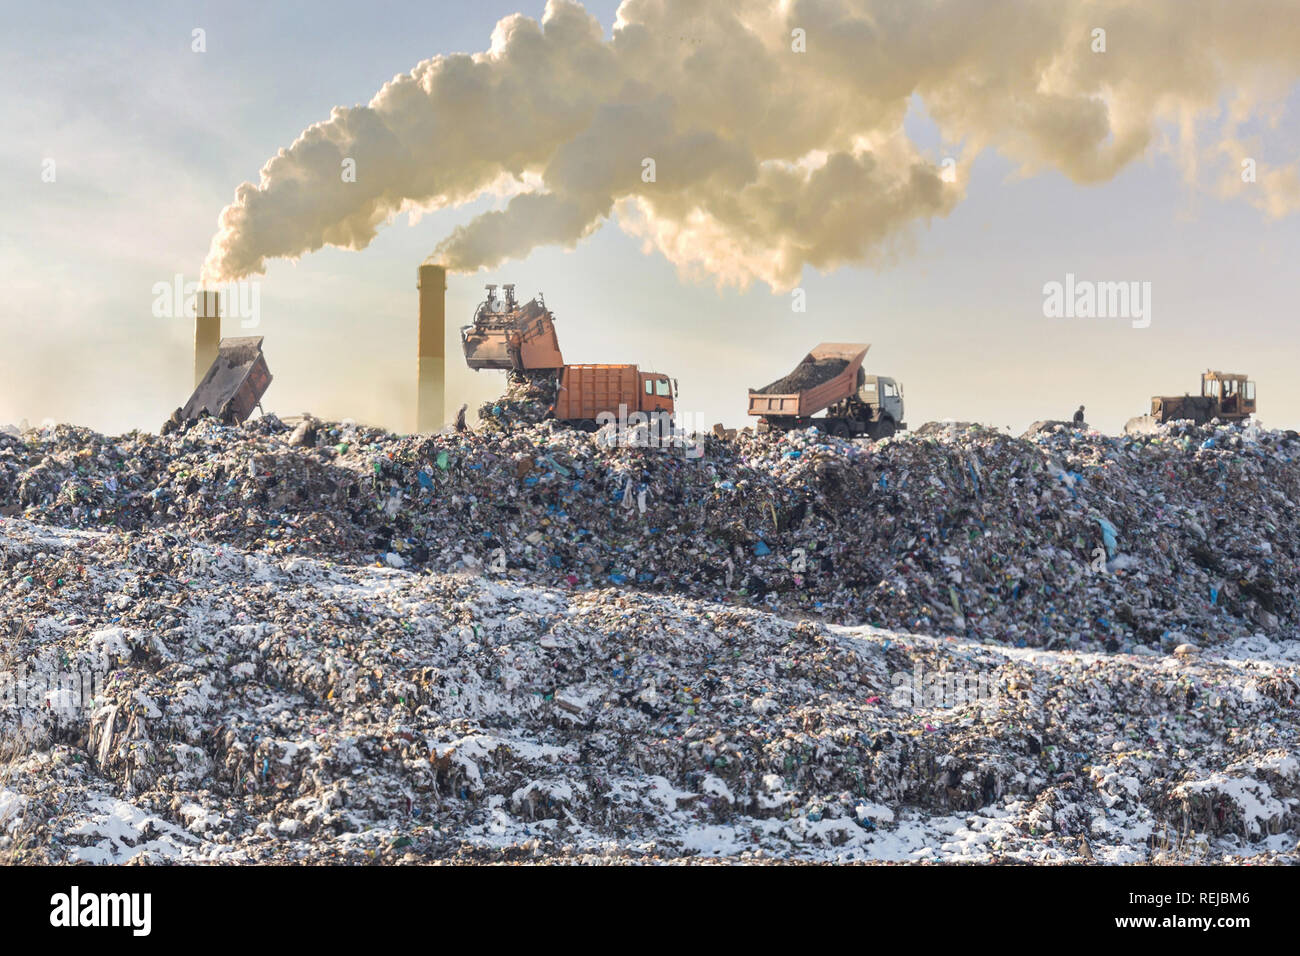 Dump trucks unloading garbage over vast landfill. Smoking industrial stacks on background. Environmental pollution. Outdated method of waste disposal. Survival of times past - Stock Image